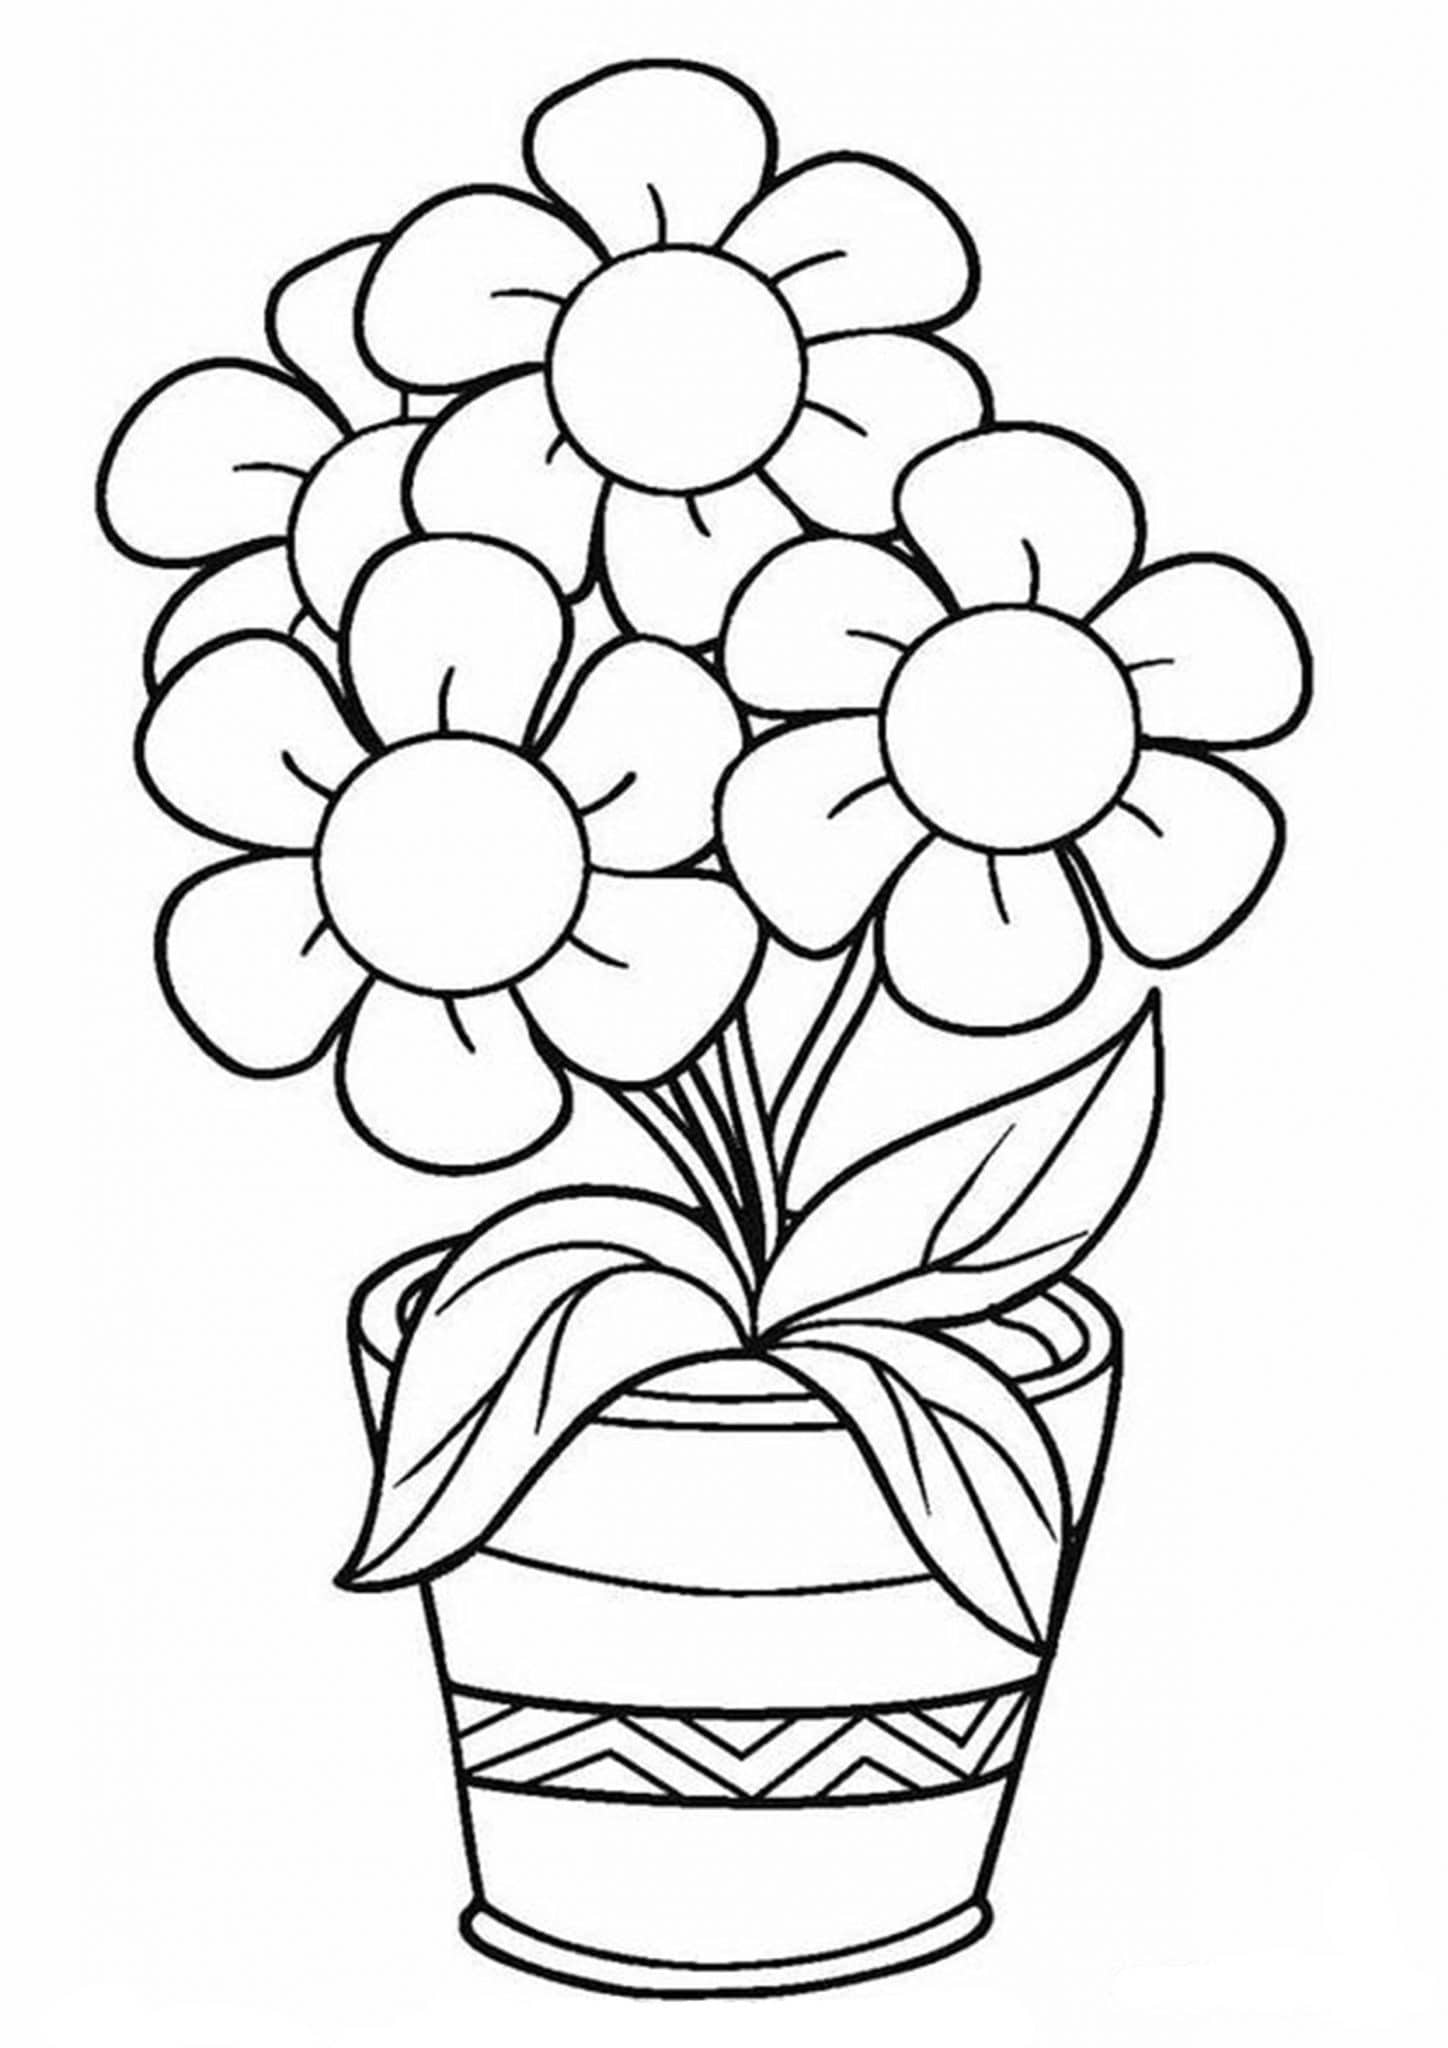 picture of flowers to print 8 best images of printable poppy flower stencil patterns to flowers of print picture